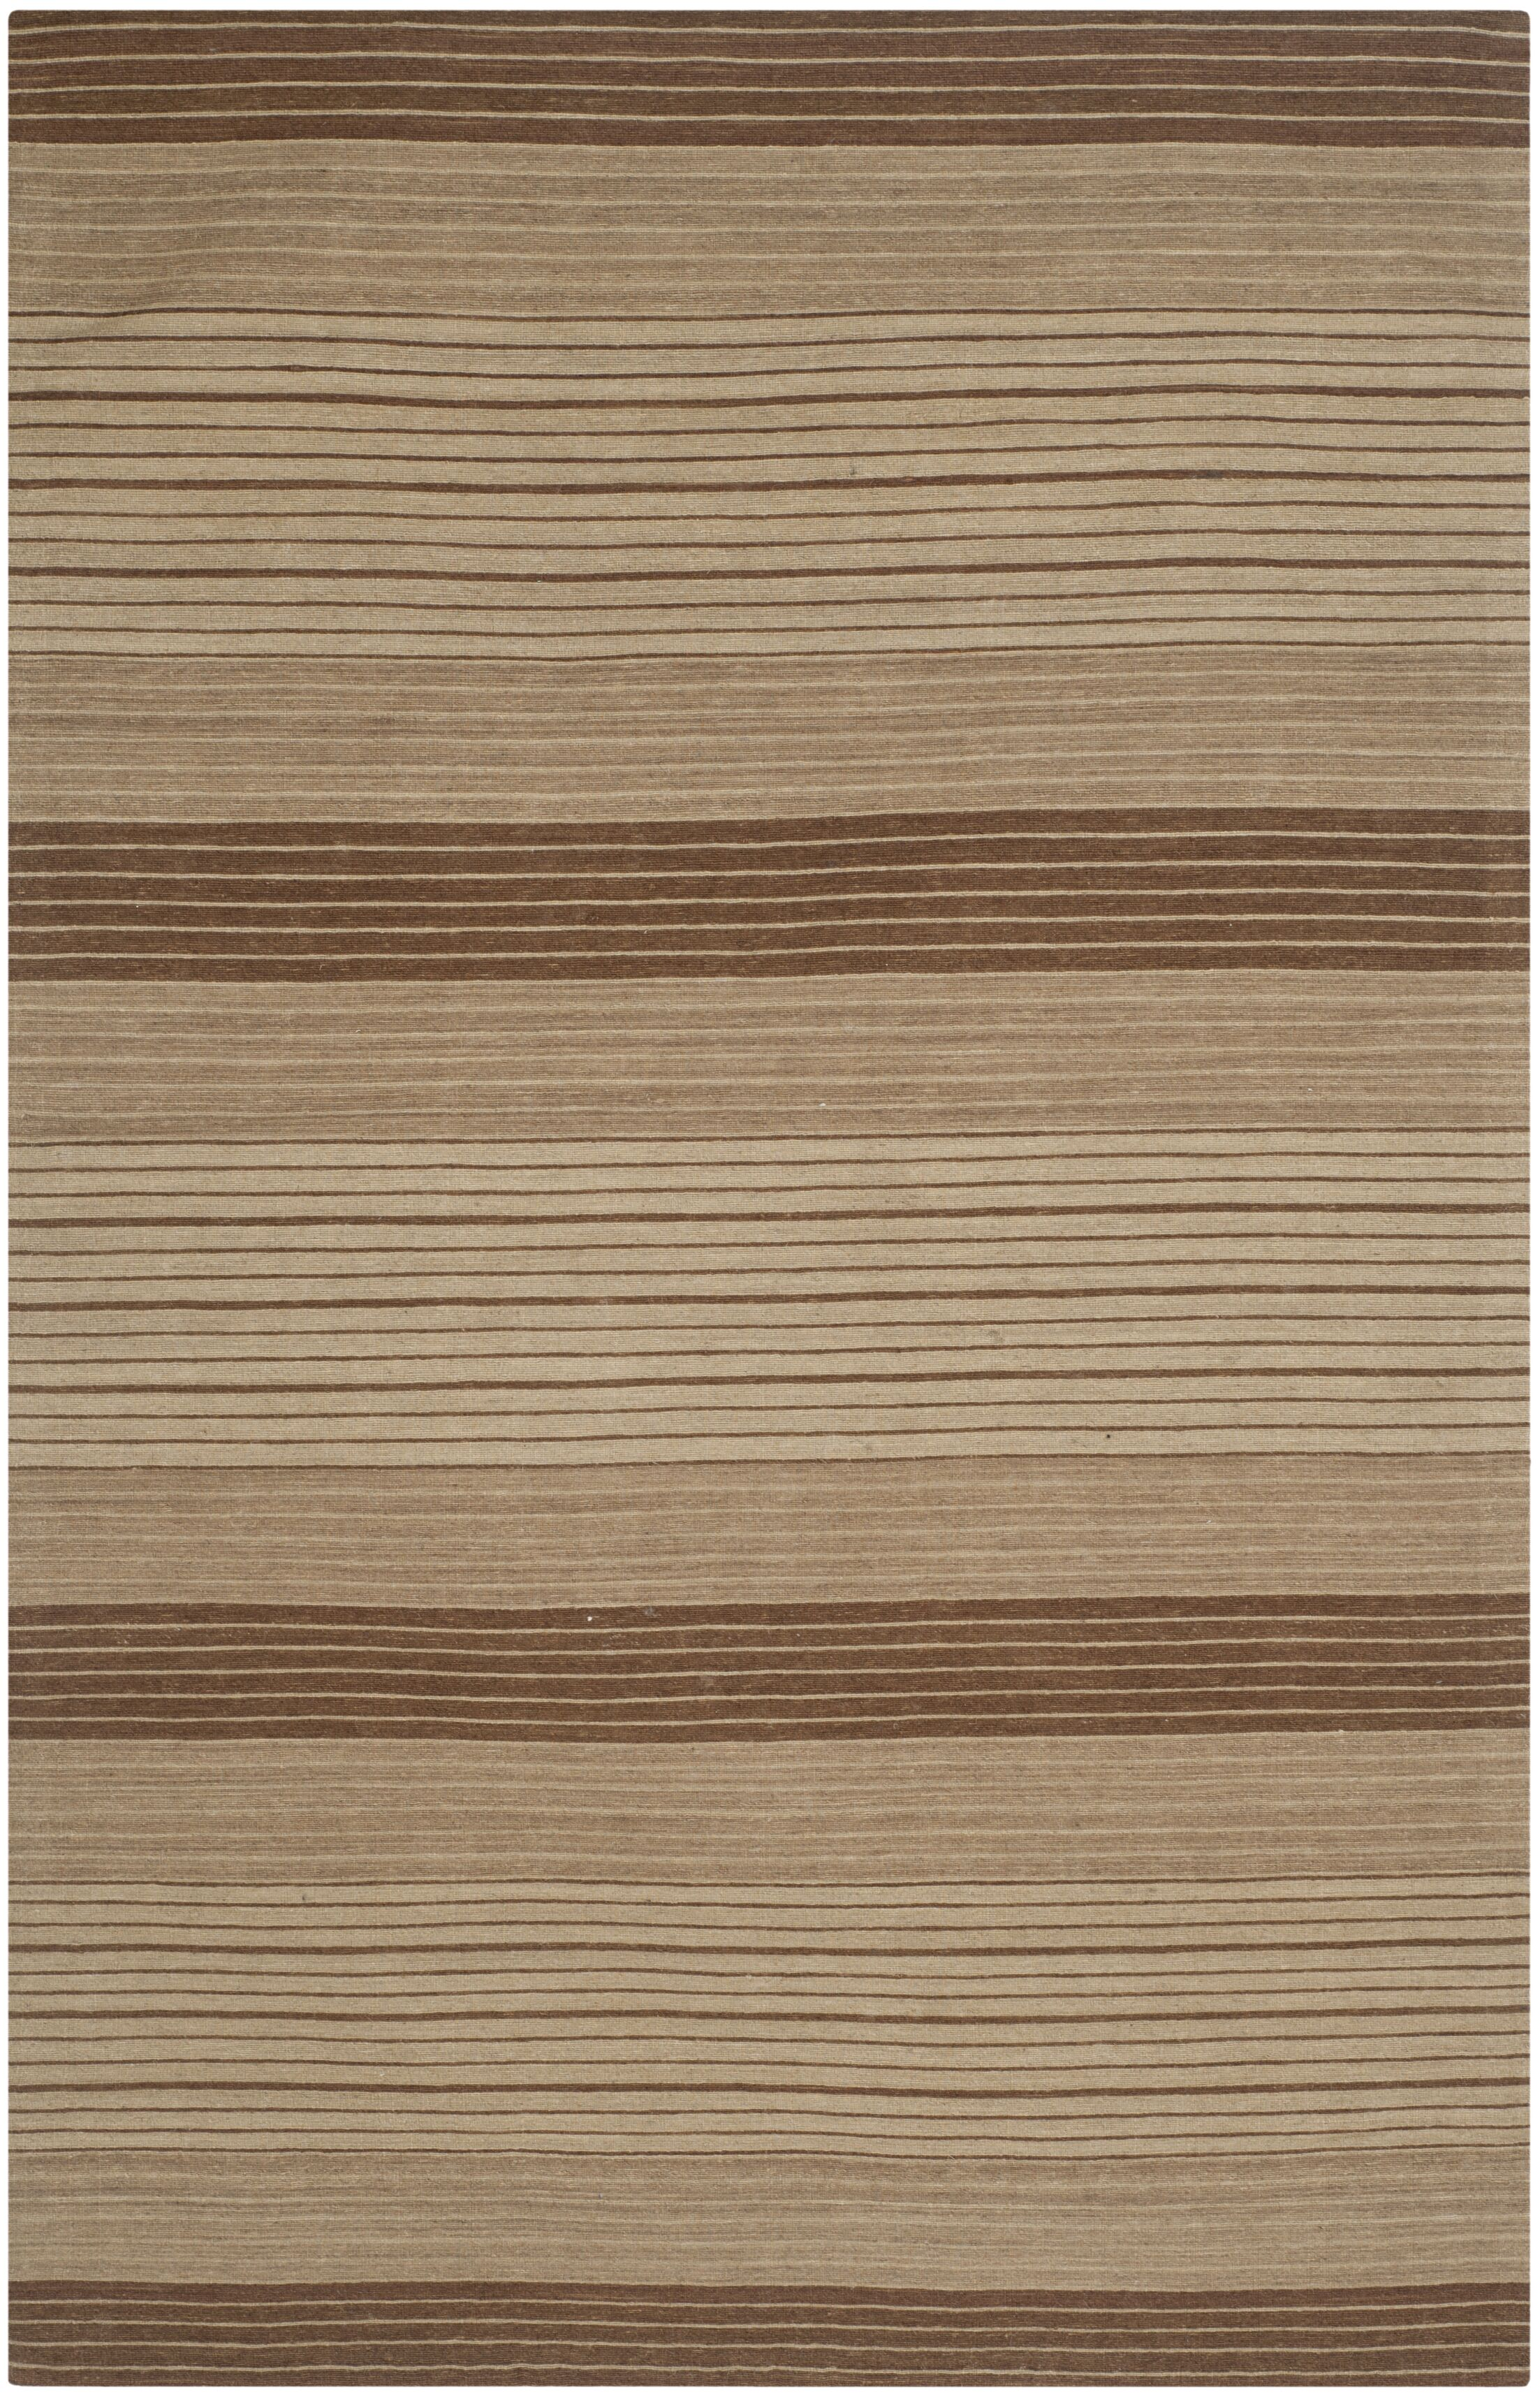 Jefferson Beige Striped Contemporary Area Rug Rug Size: Rectangle 5' x 8'